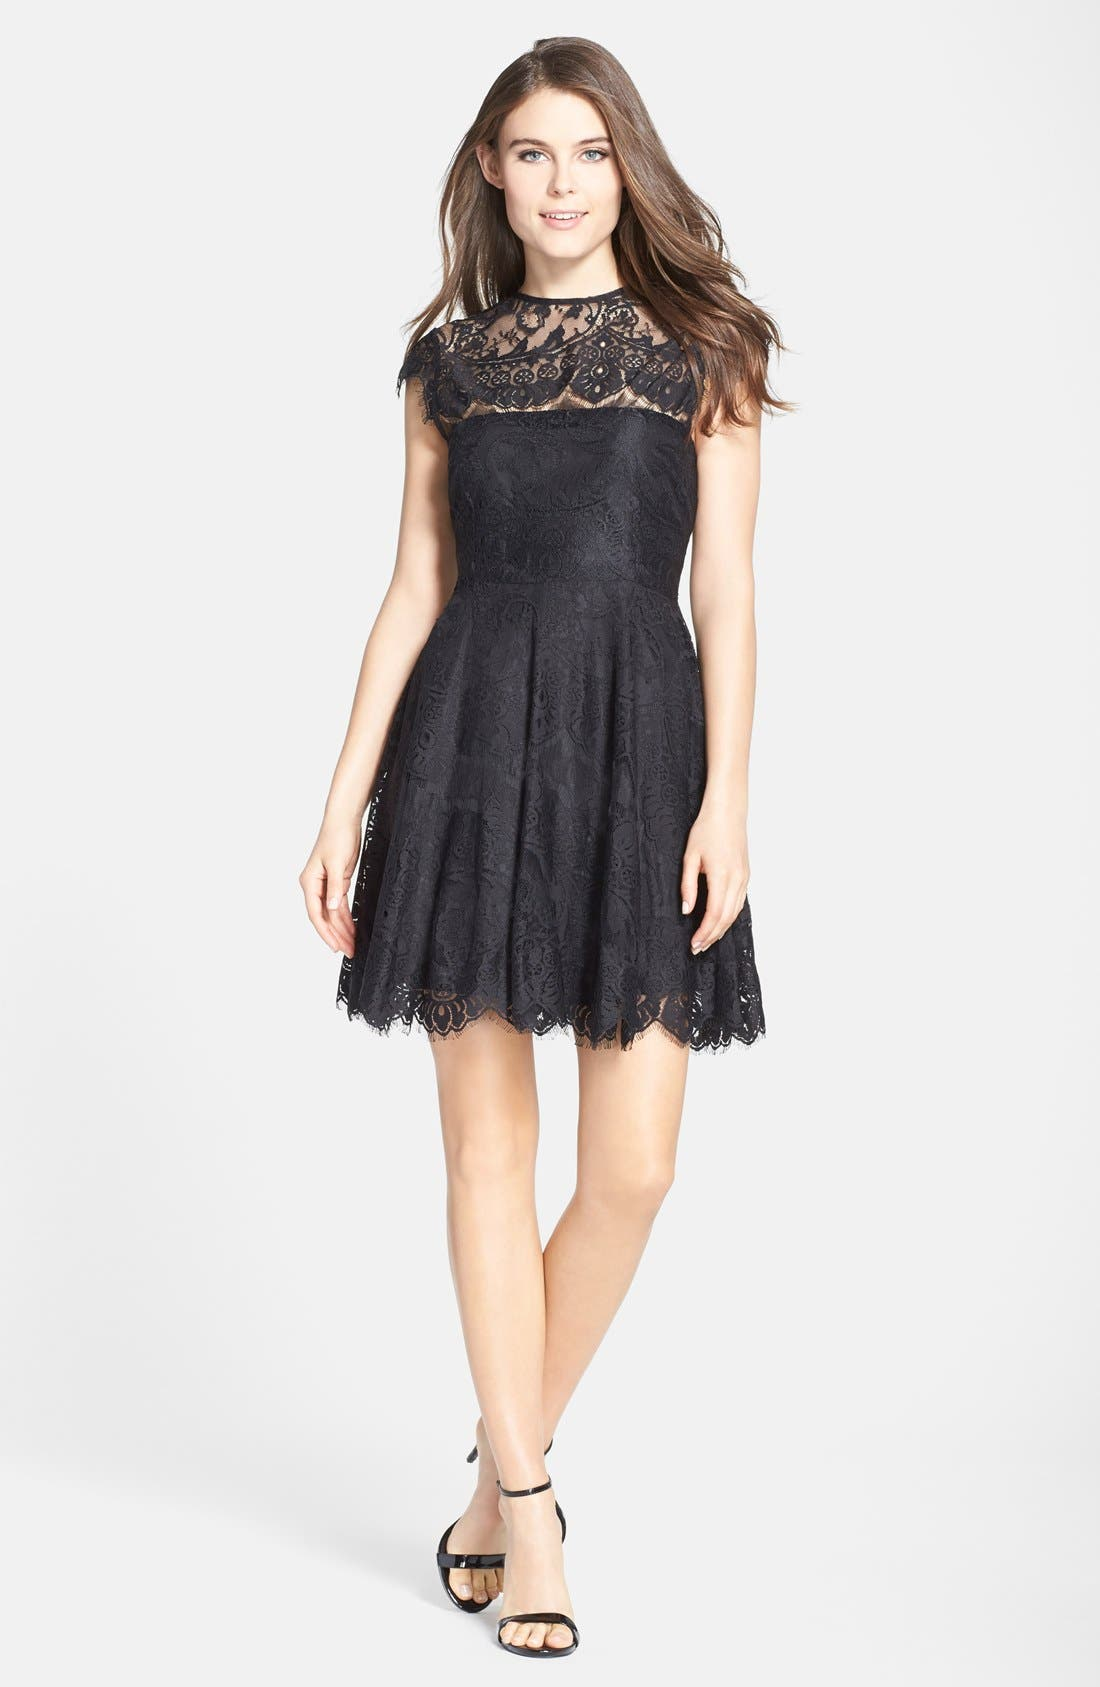 'Rhianna' Illusion Yoke Lace Fit & Flare Dress,                             Alternate thumbnail 10, color,                             BLACK